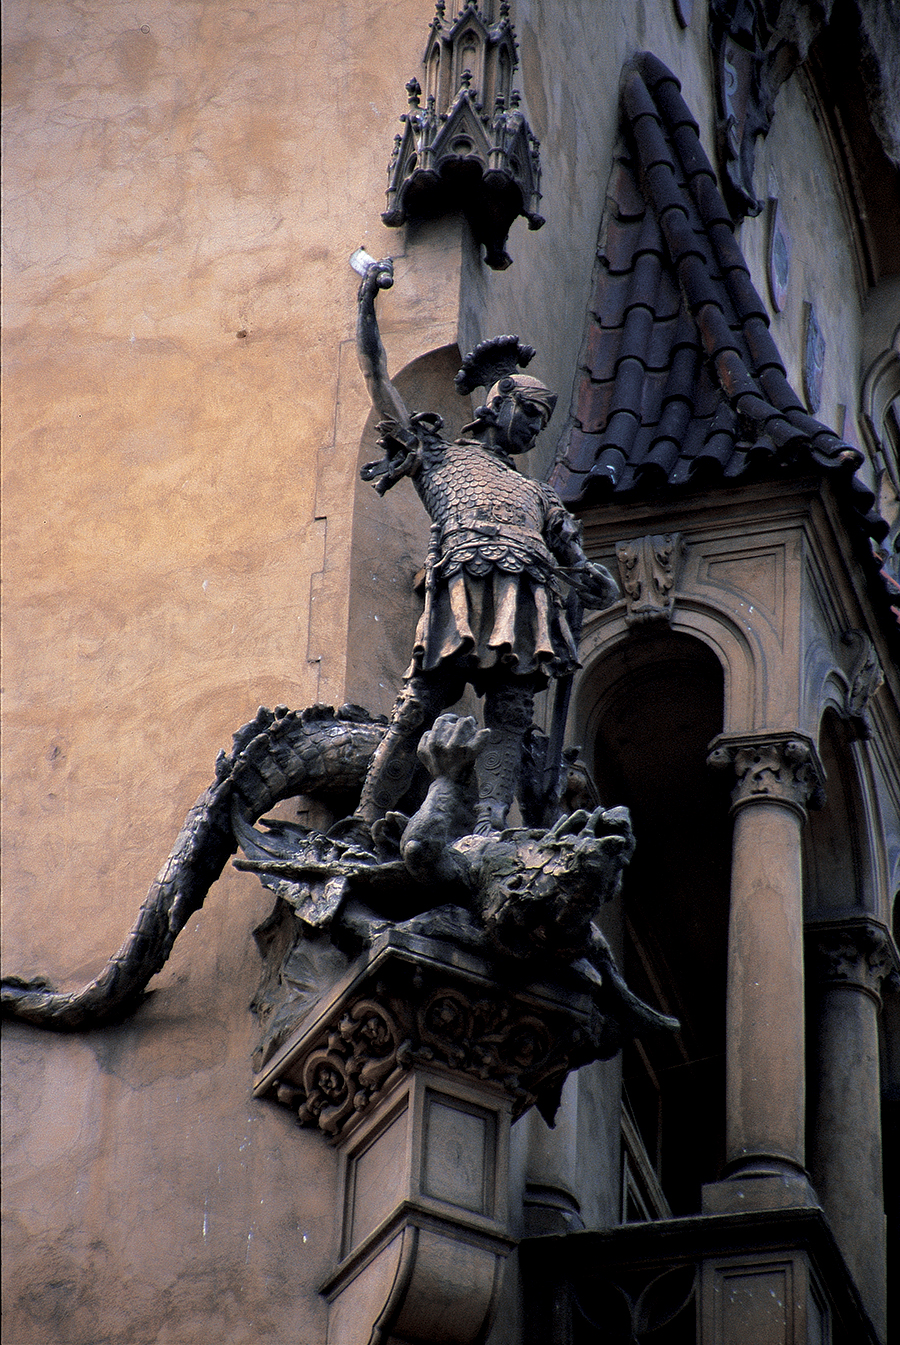 St. George slaying the dragon. In Christianity, the serpent is often associated with the Devil, and the religion promoted the symbolism of saviour-versus-serpent. (Welsh folklore contains some notable exceptions to this view). Photo: Prague, Czech Republic